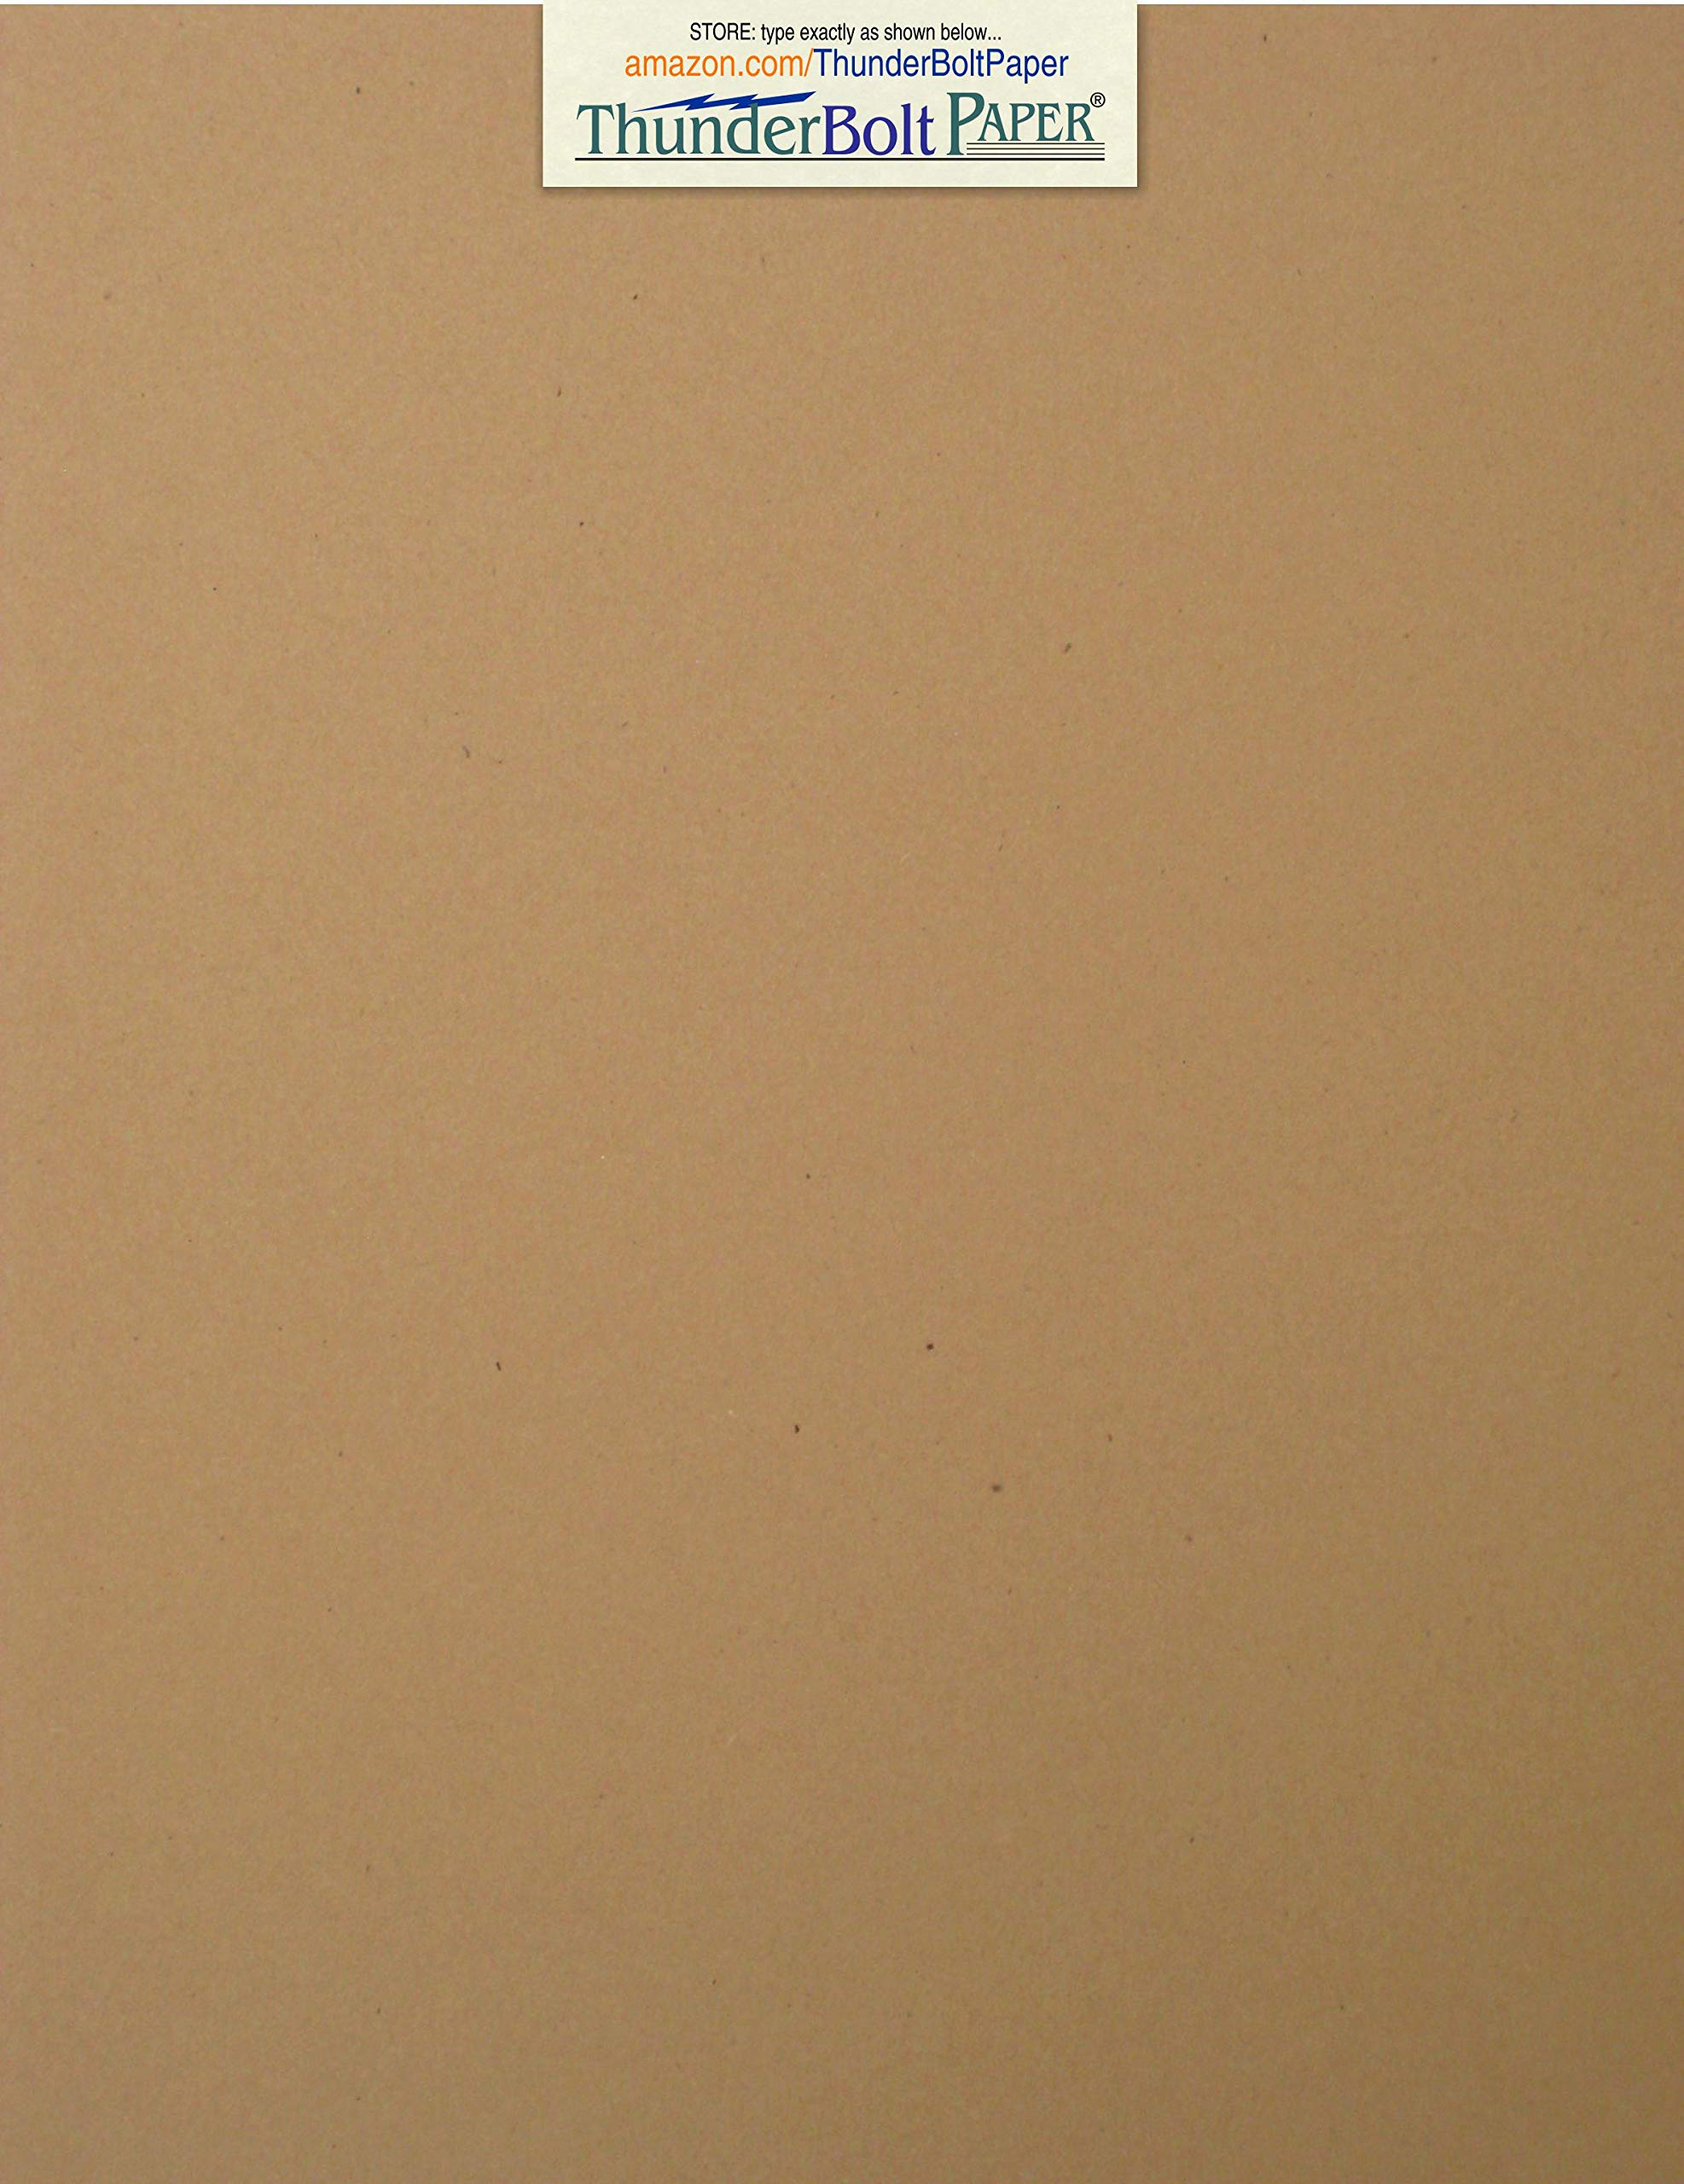 150 Brown Kraft Fiber 28/70# Text (NOT card/cover) Paper Sheets - 8.5'' X 11'' - 70lb/pound Weight (8.5X11 Inches) Standard Letter|Flyer Size - Rich Earthy Color with Natural Fibers - Smooth Finish